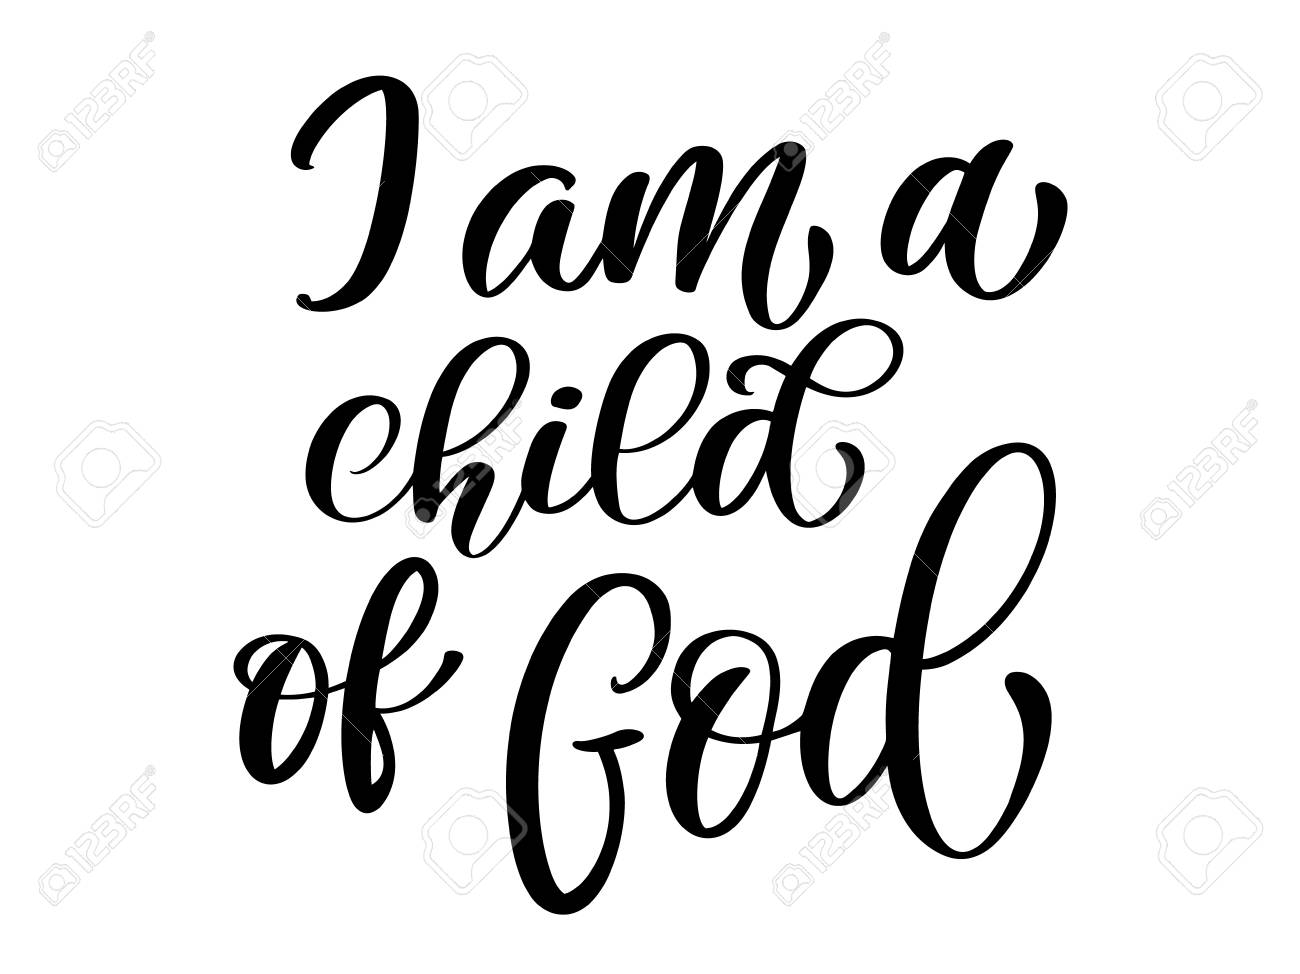 54aa43ab4 I am a child of God christian quote in Bible text, hand lettering  typography design. Vector Illustration design for holiday greeting card and  for photo ...